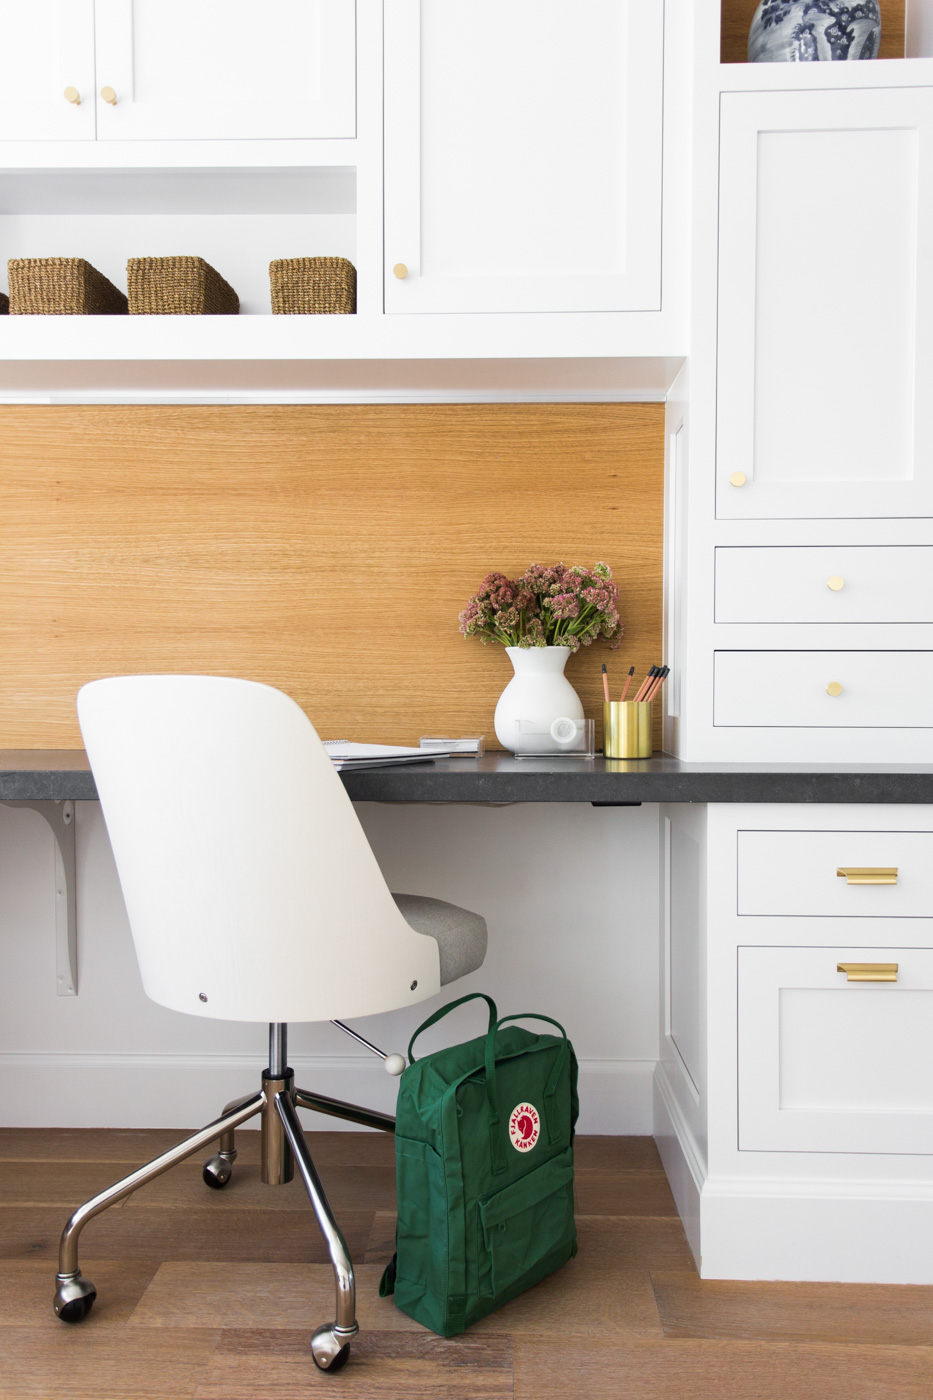 White rolling chair in front of built in desk